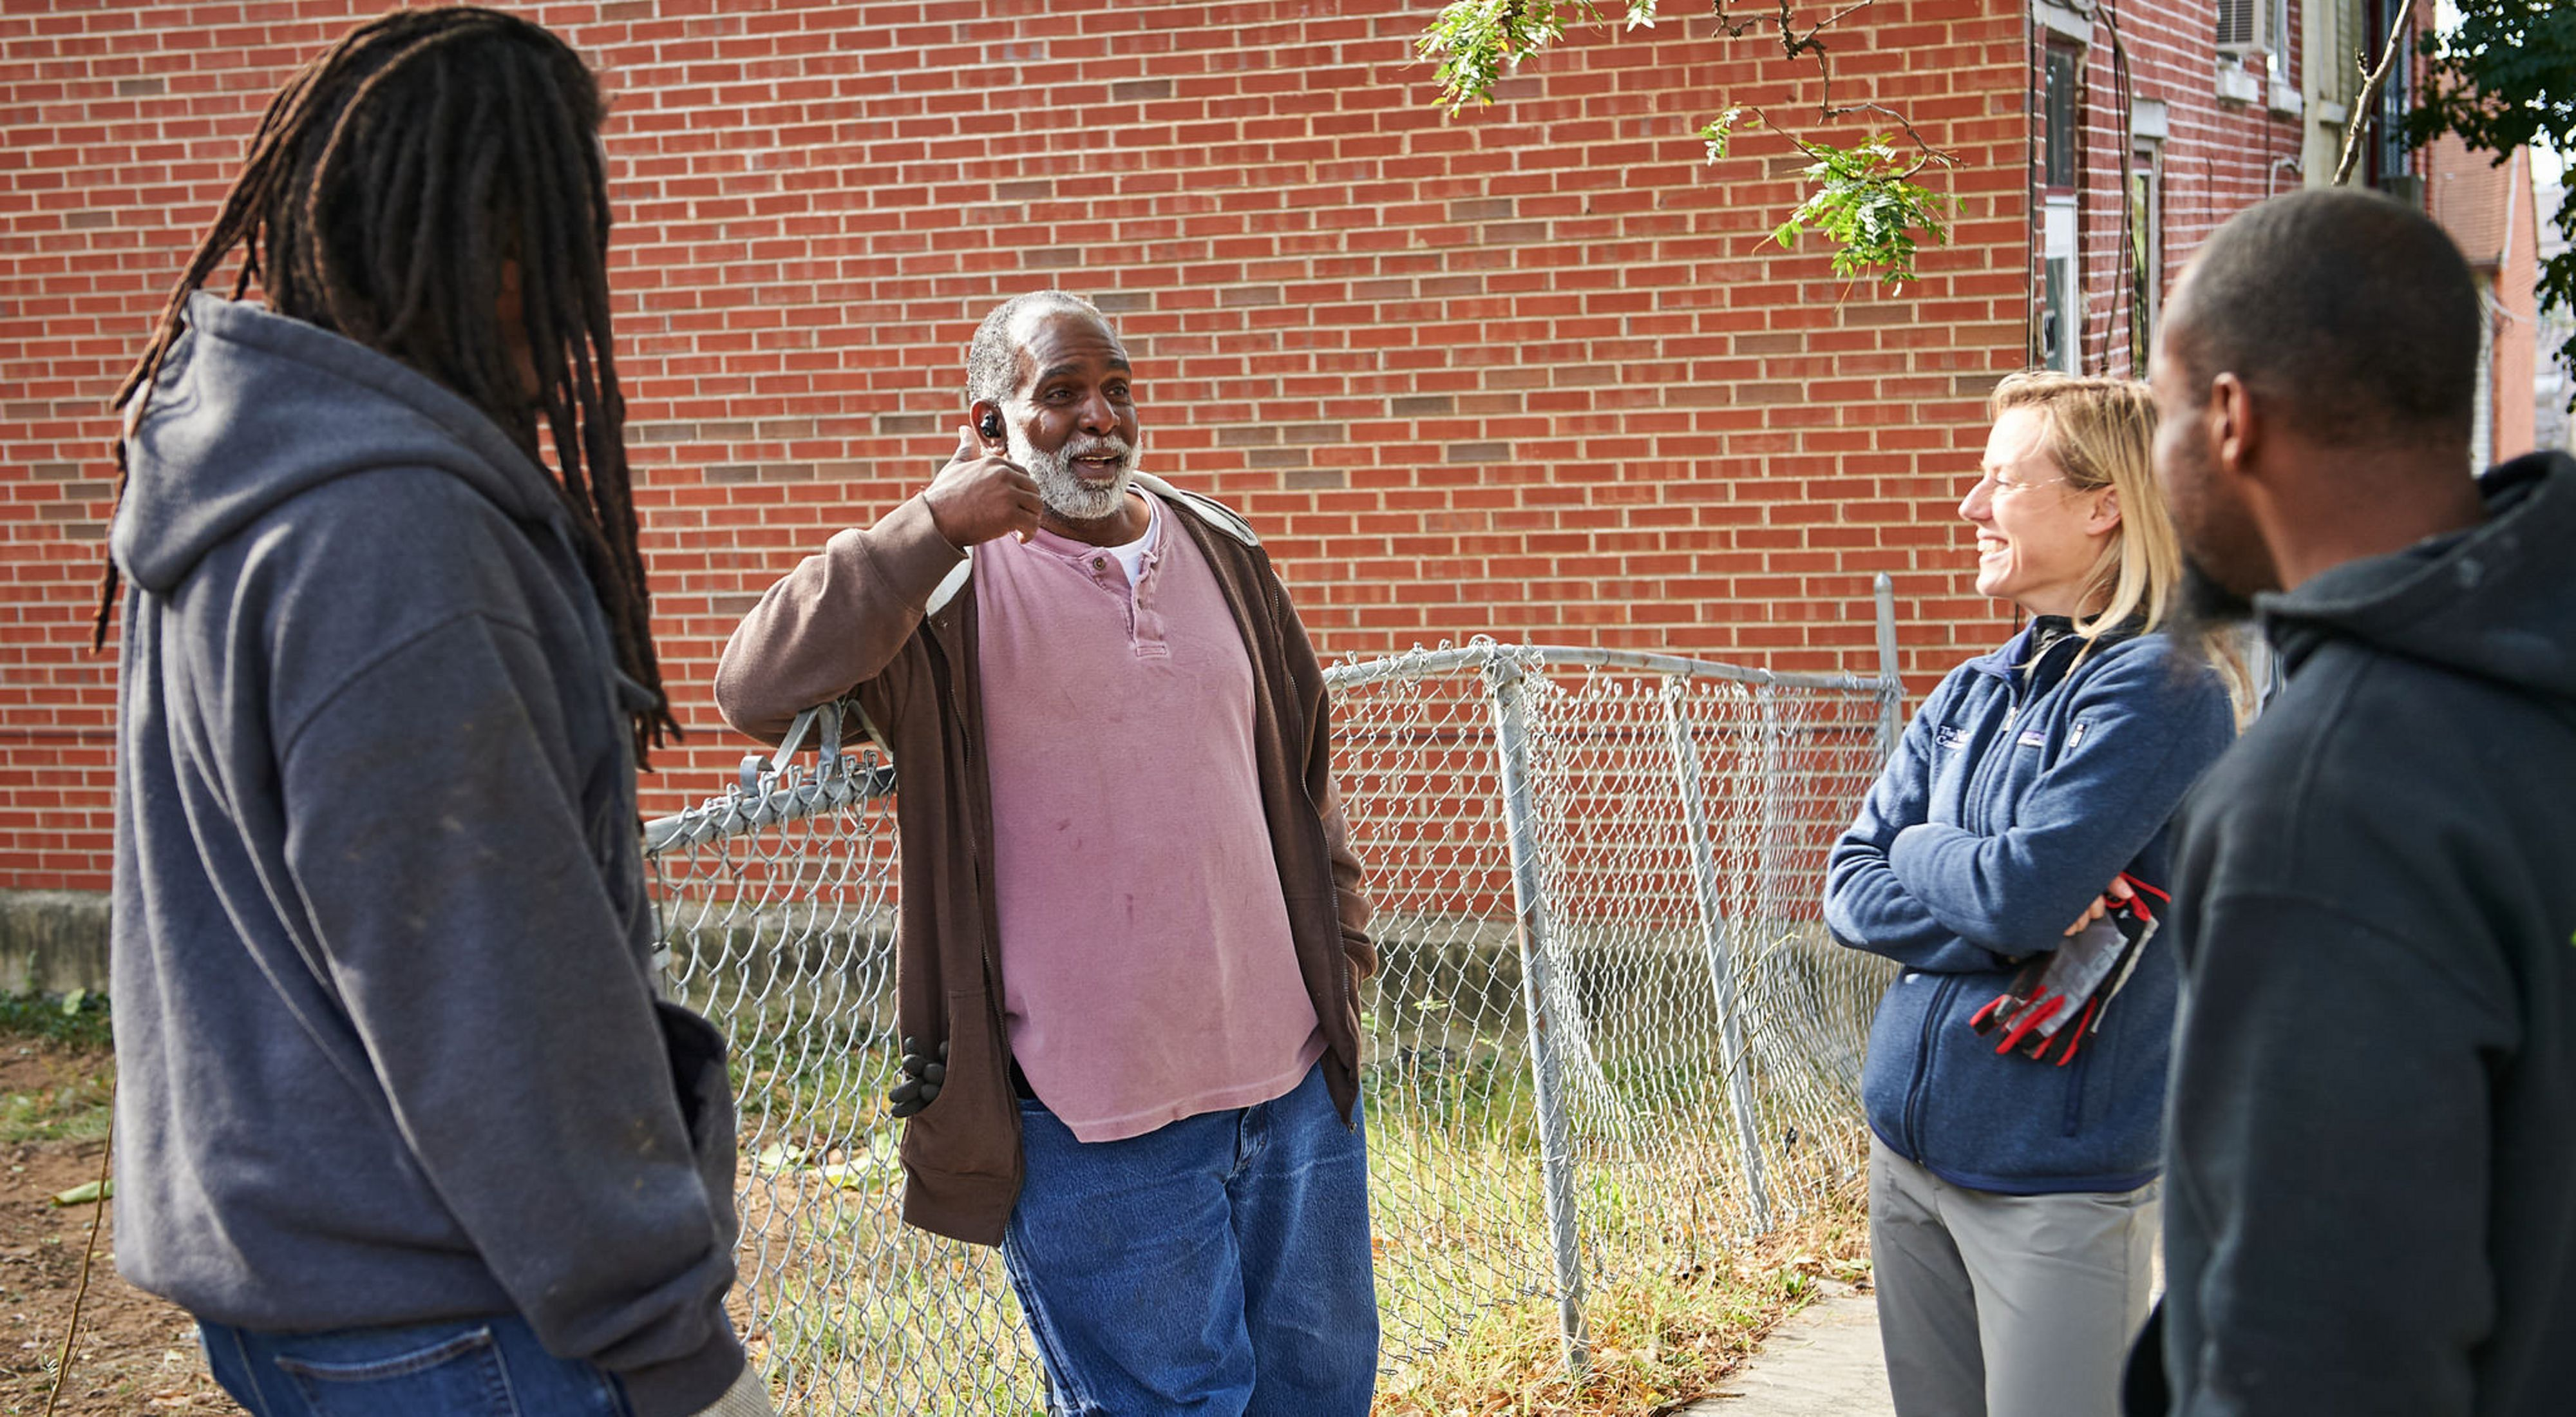 Four people stand together talking next to an open lot. The man in the center is the focus of attention. He is smiling and gesturing as he talks.